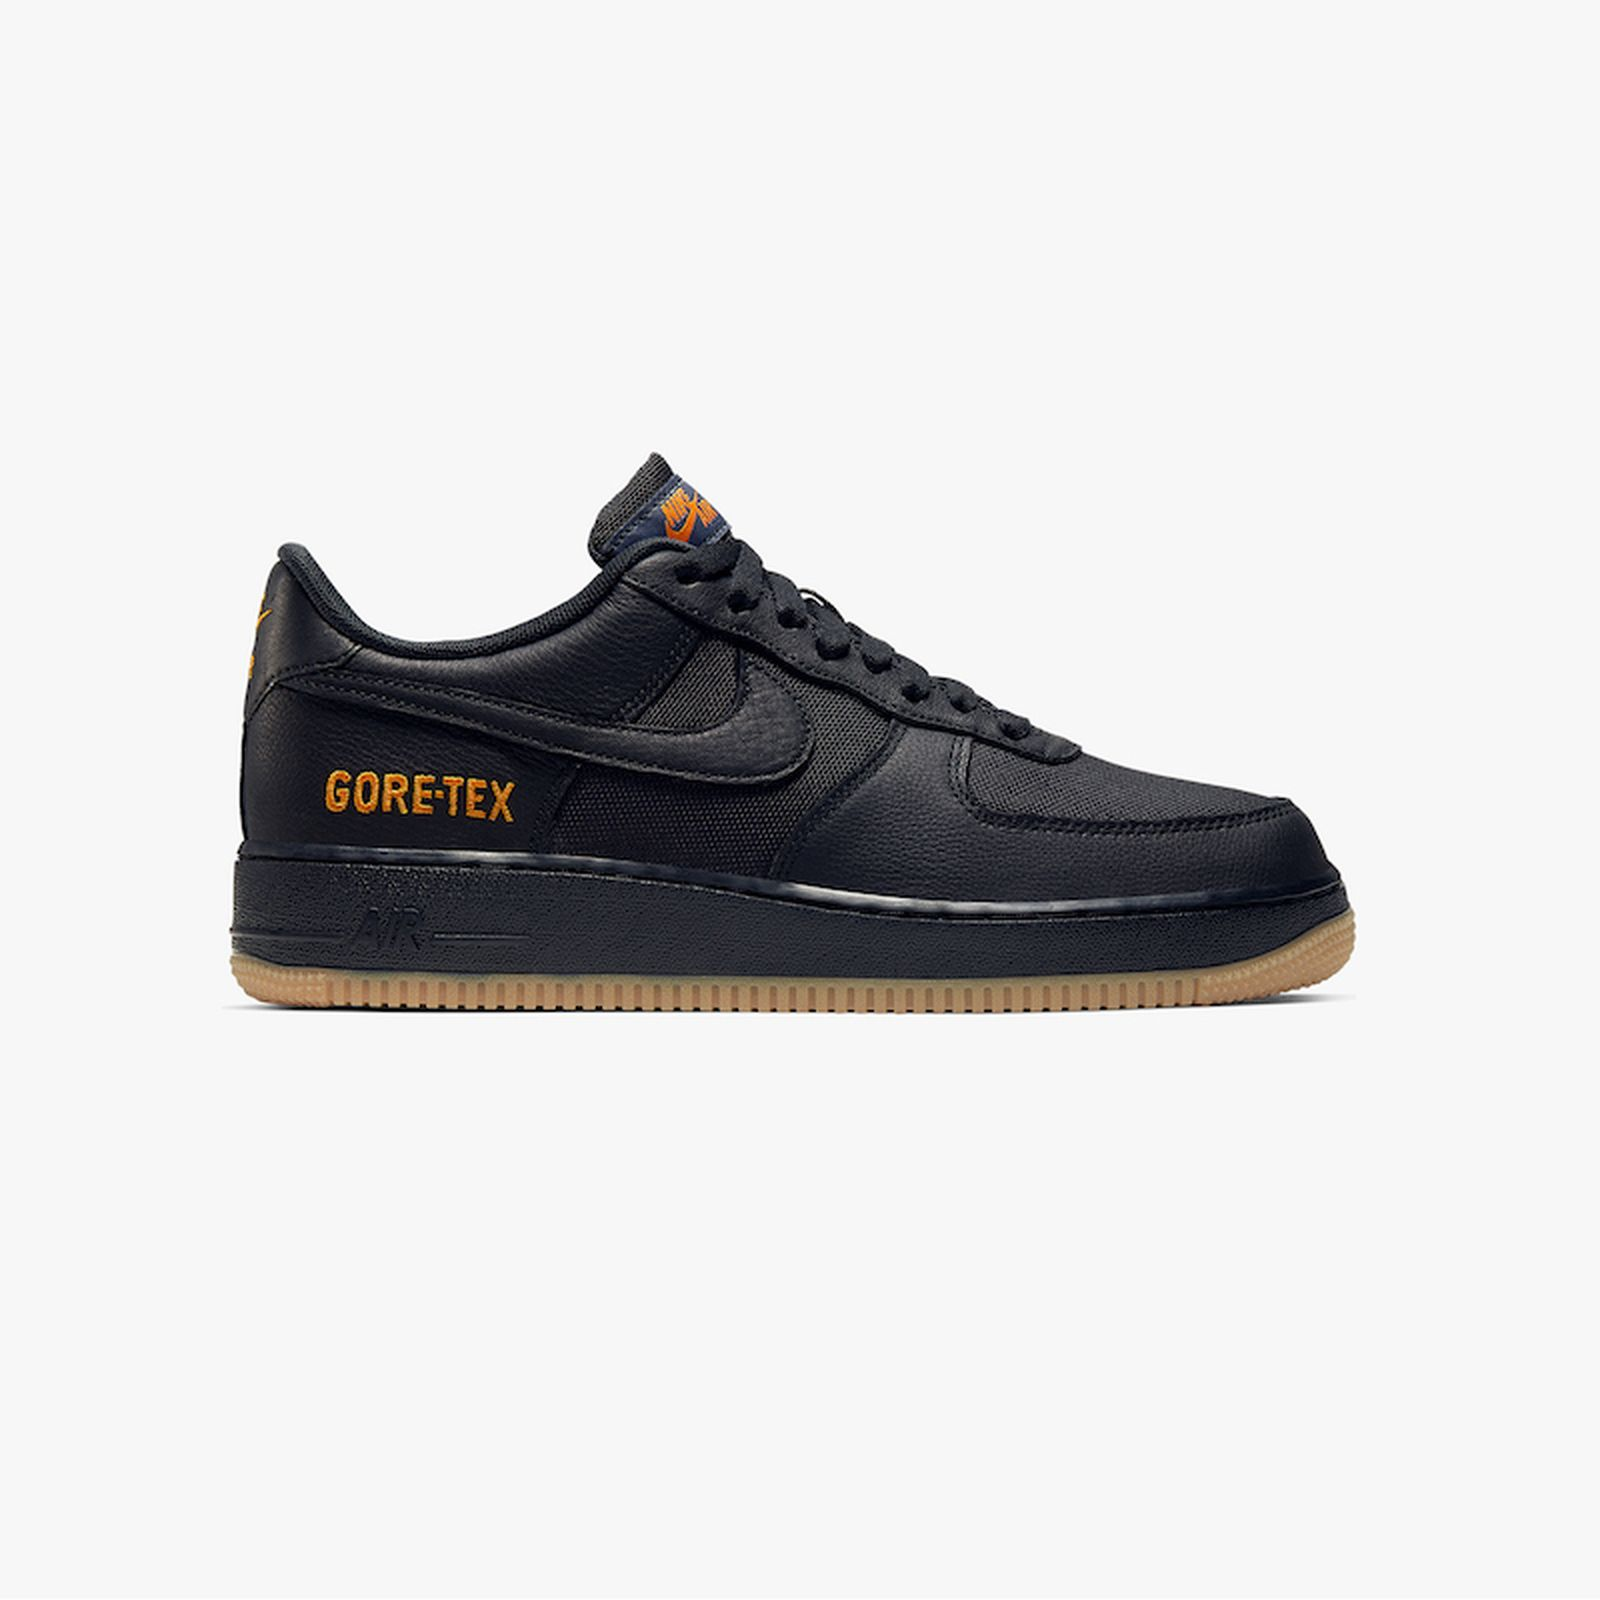 Nike GORE-TEX Air Force: Release Date & Price